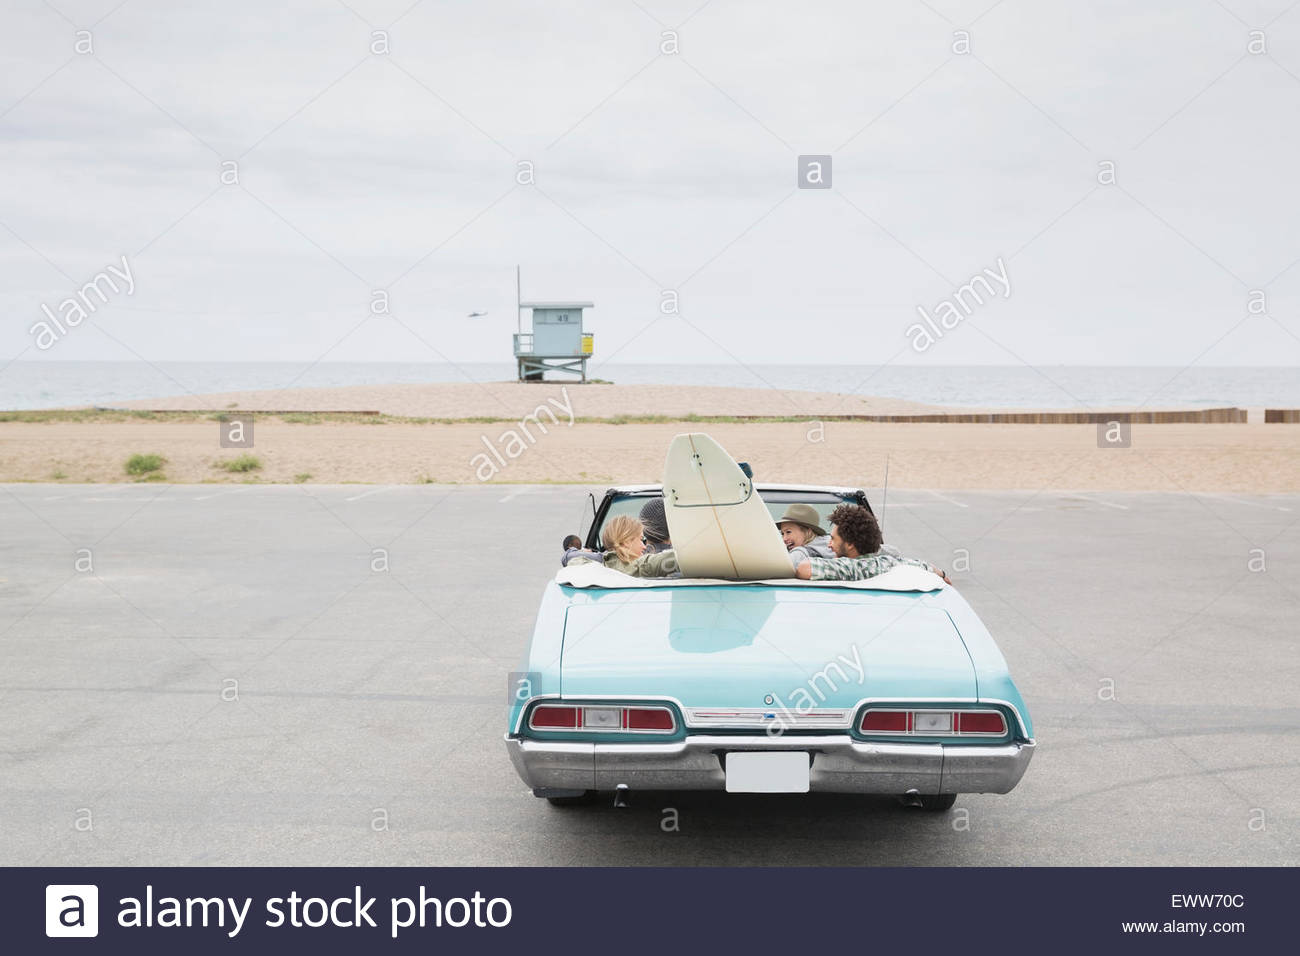 Friends in convertible with surfboard arriving beach - Stock Image